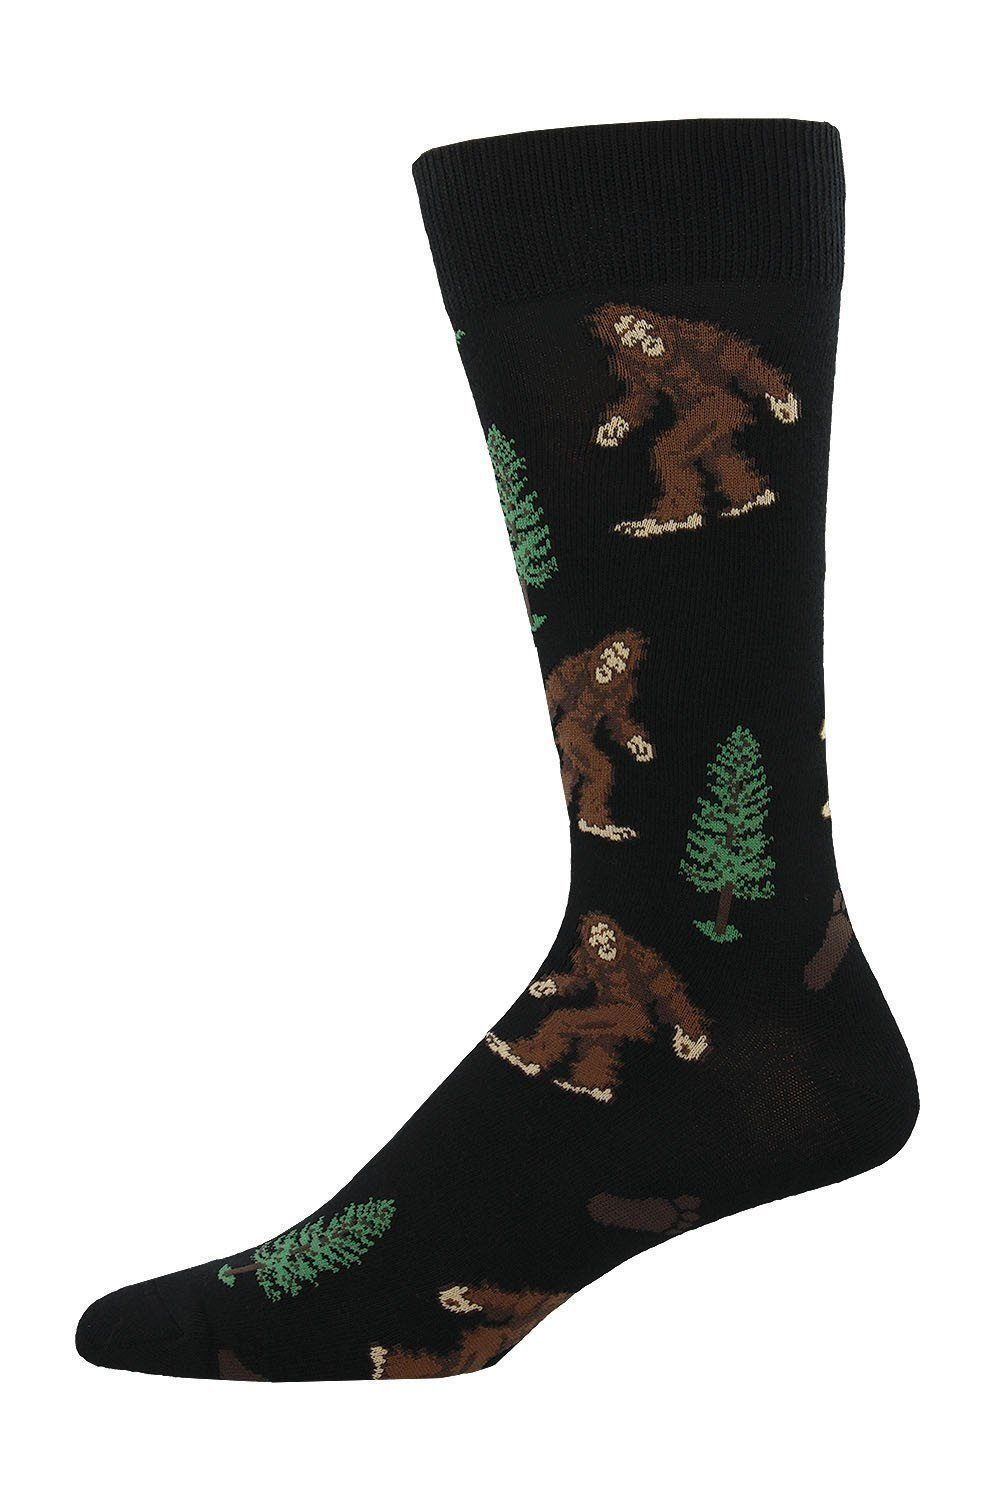 Socksmith - Bigfoot Crew Socks | Men's - Knock Your Socks Off